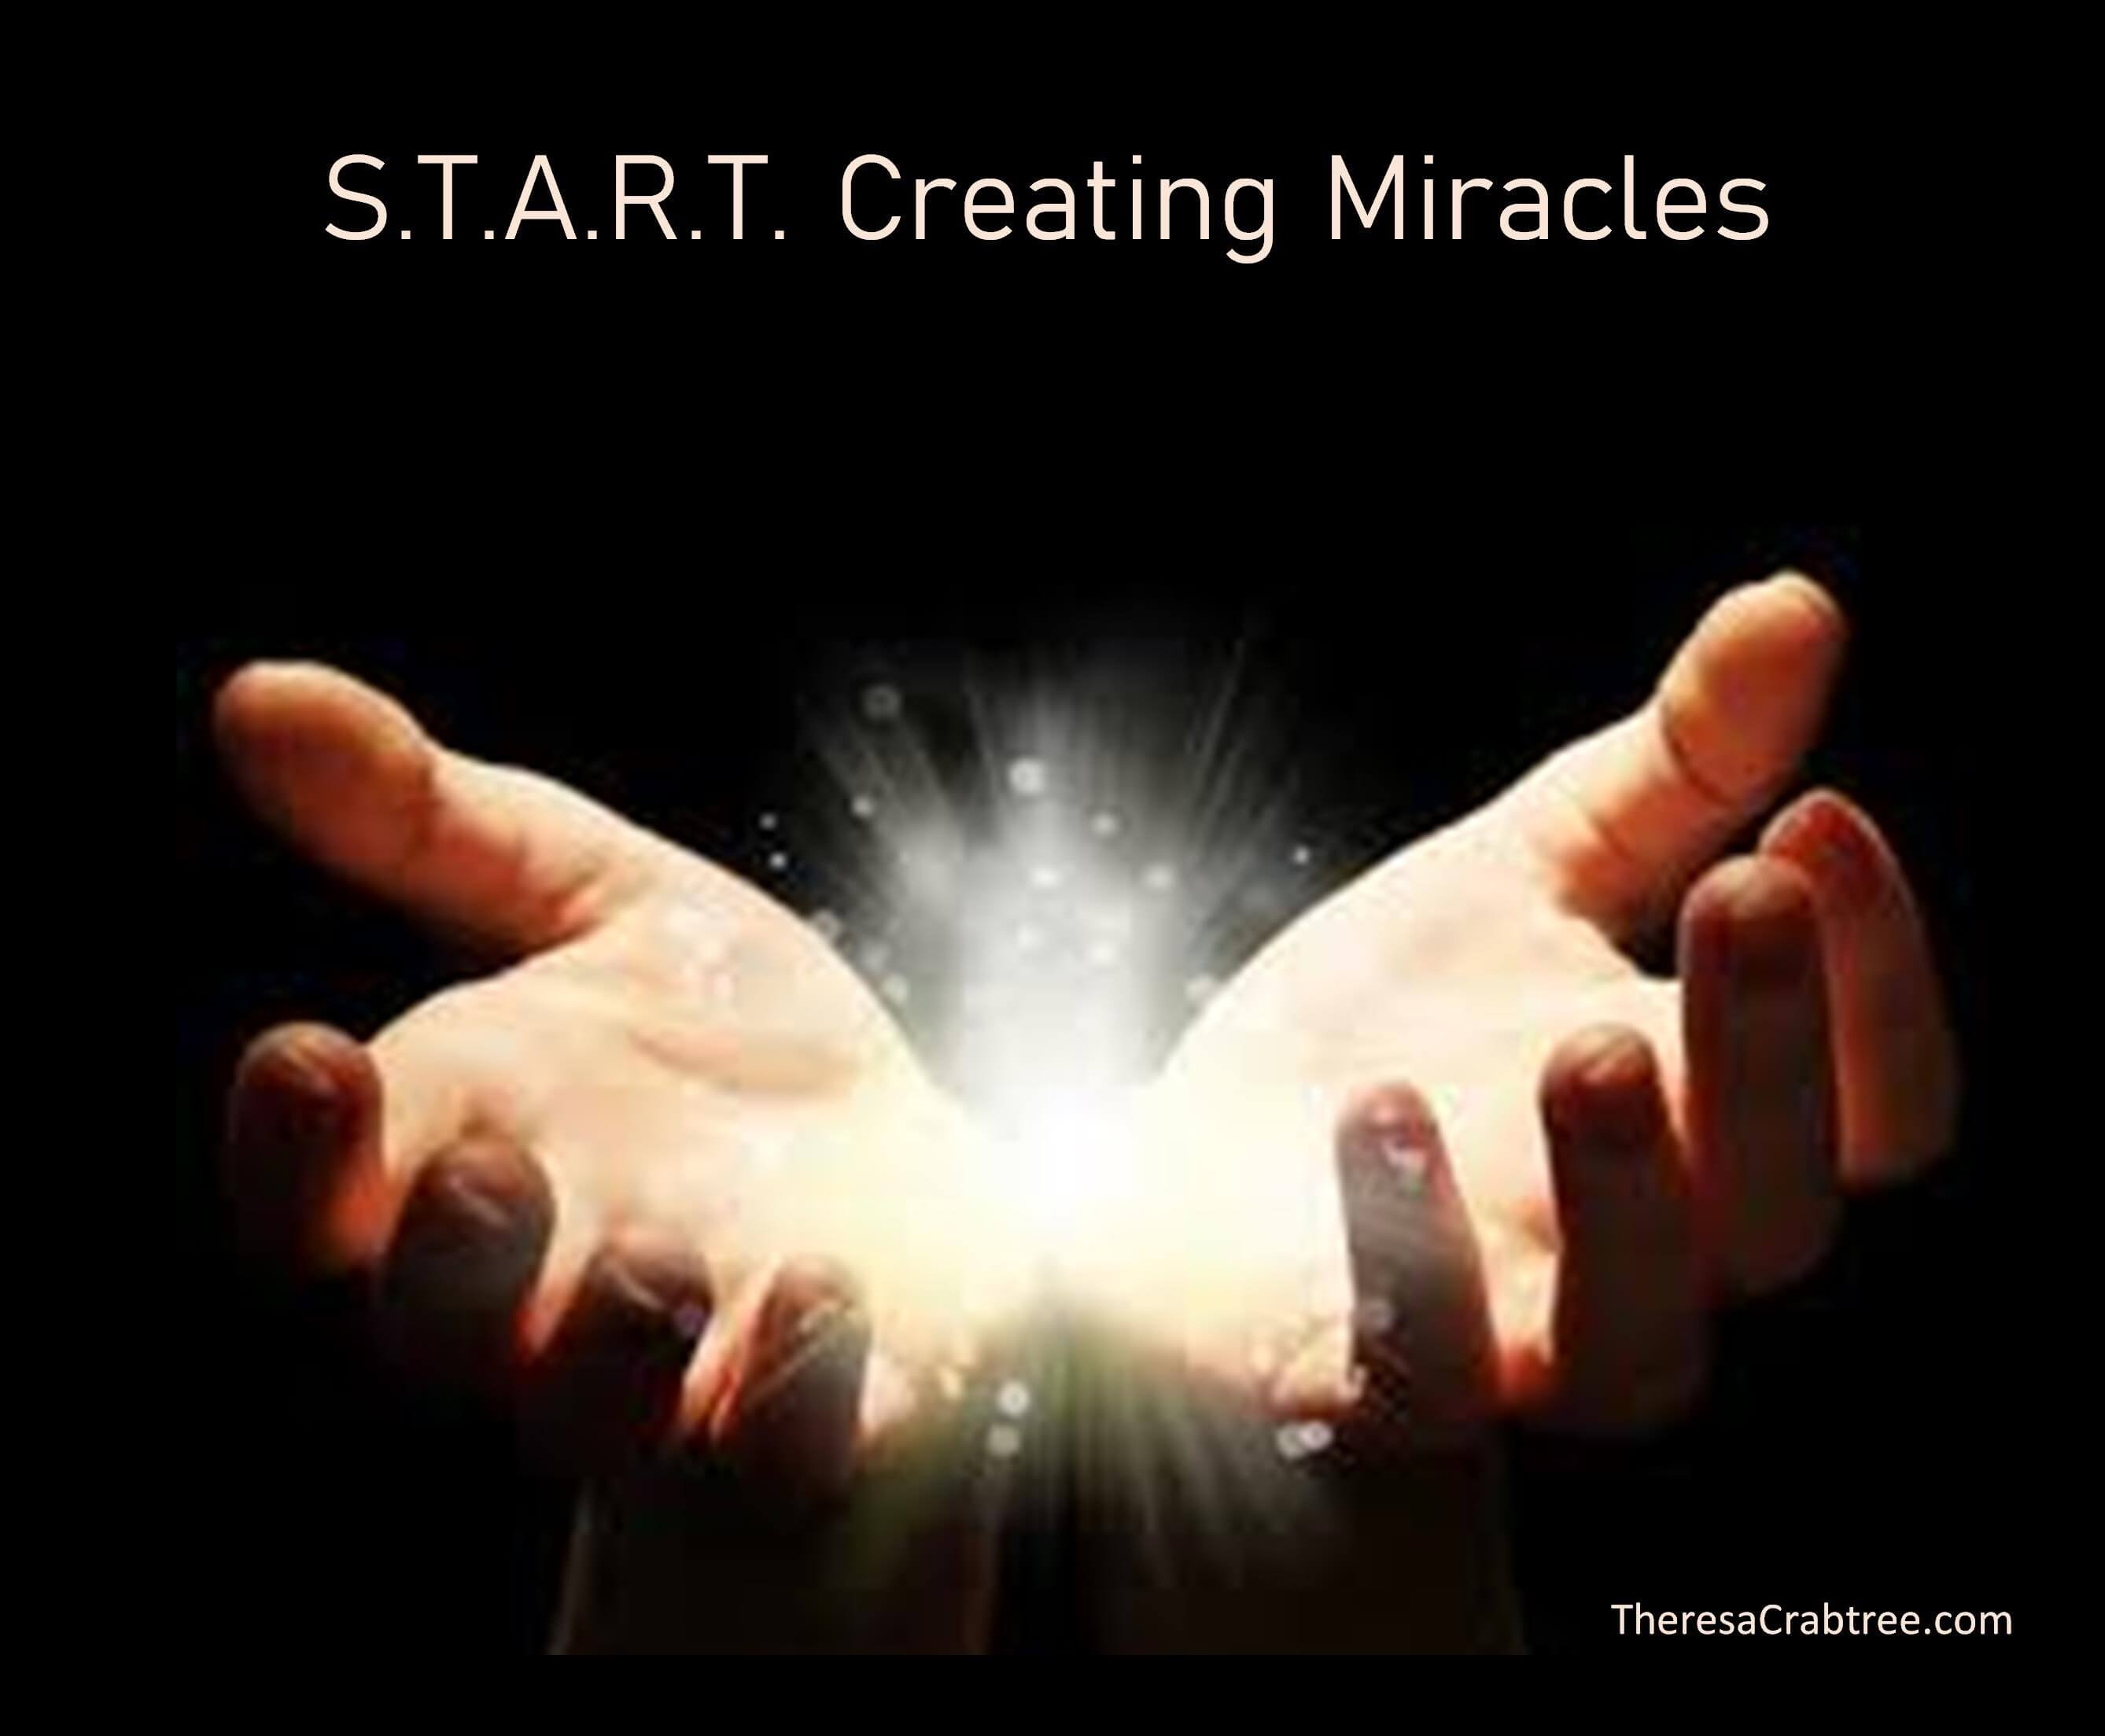 S.T.A.R.T. Creating Miracles